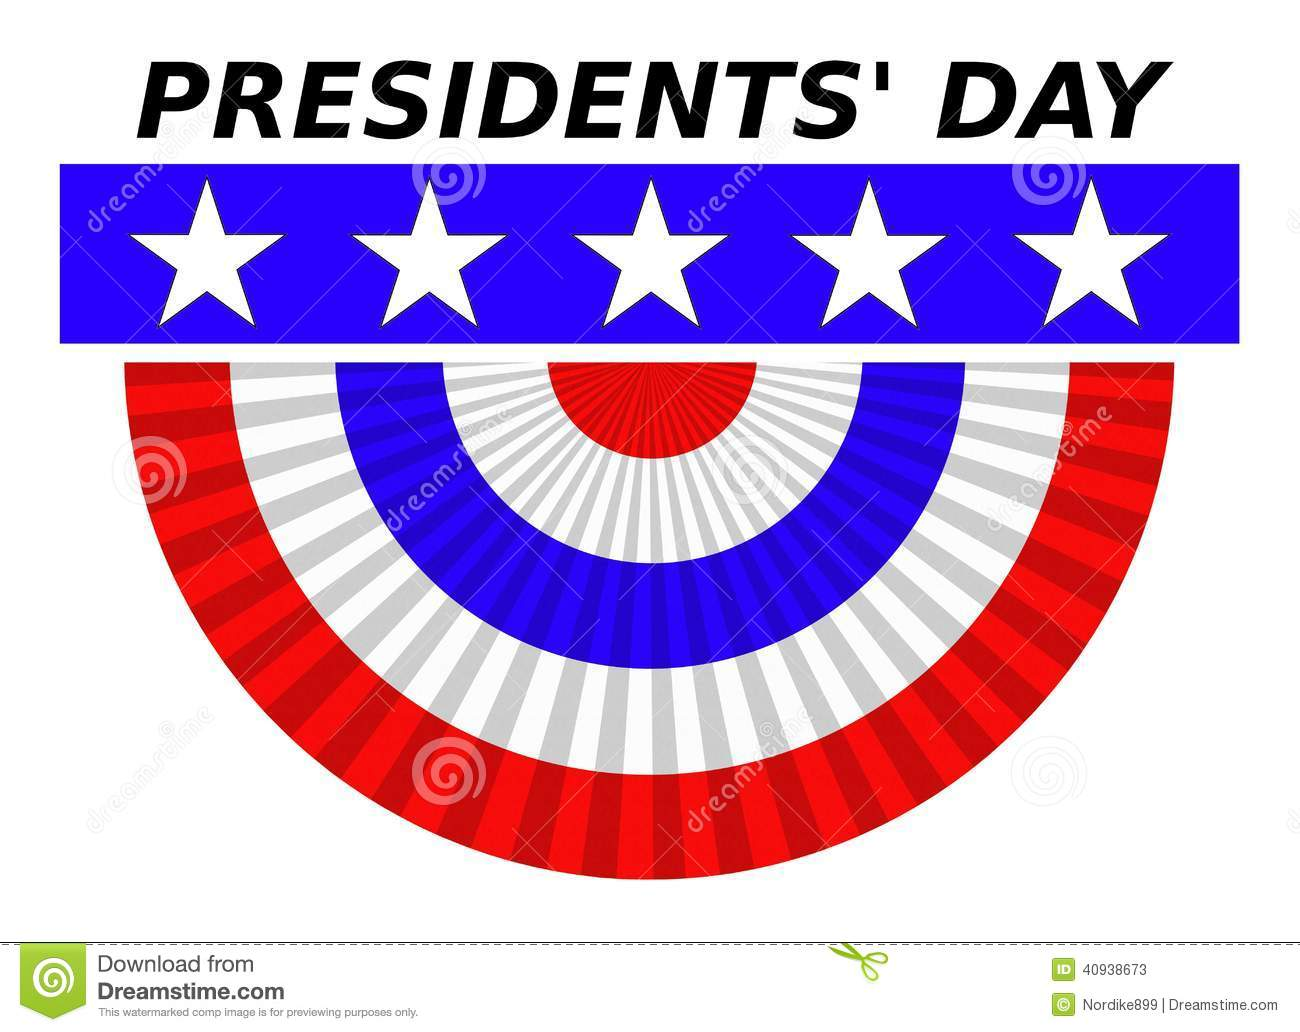 60 Most Beautiful Presidents Day 2017 Greeting Pictures